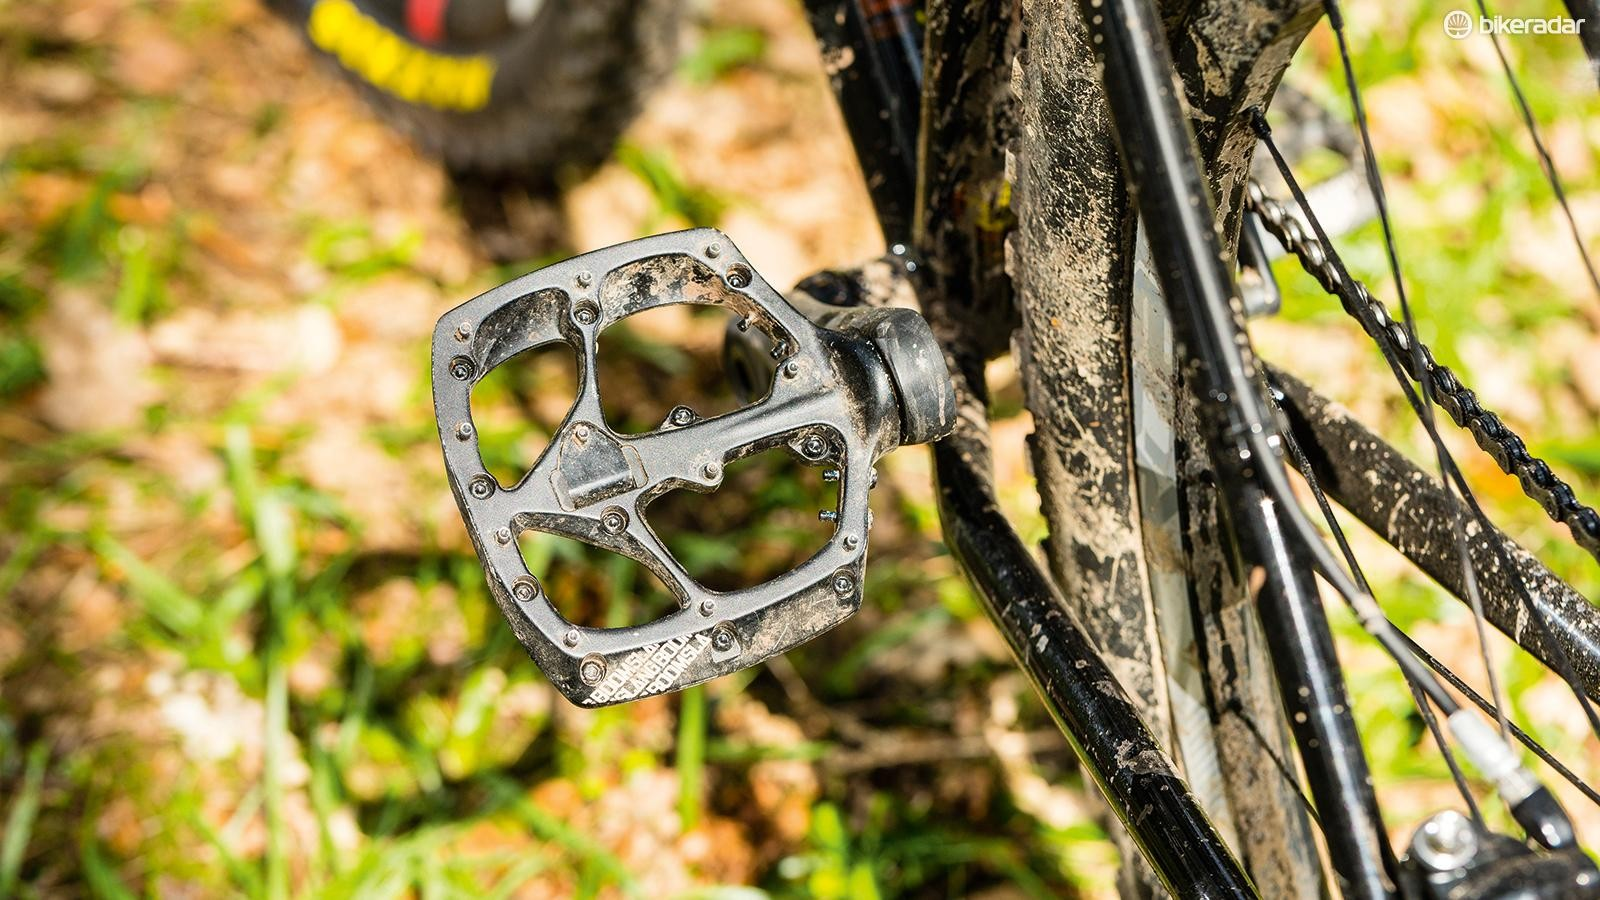 Specialized Boomslang pedals